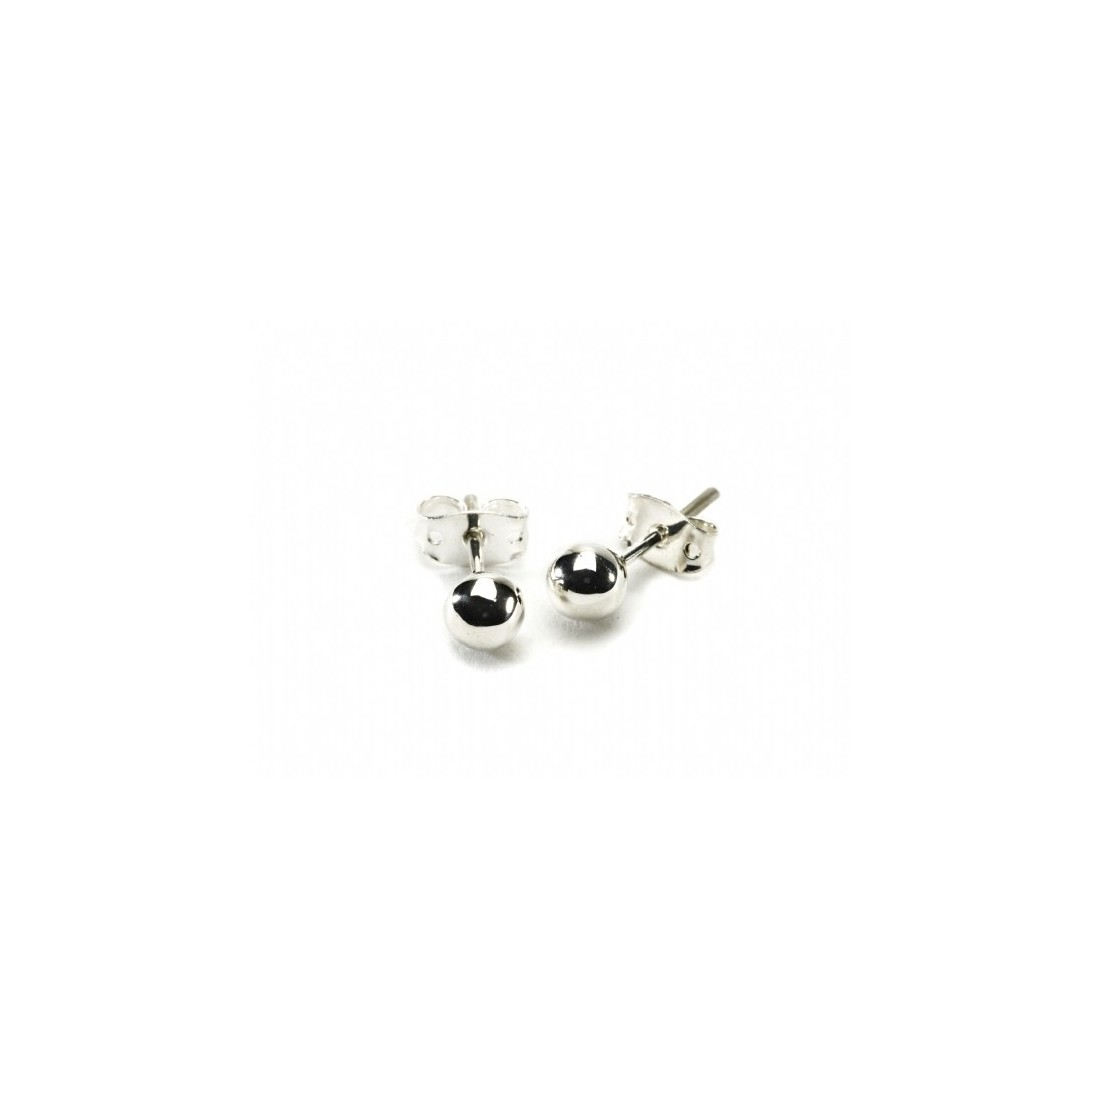 6mm Sterling Silver Ball Stud Earrings